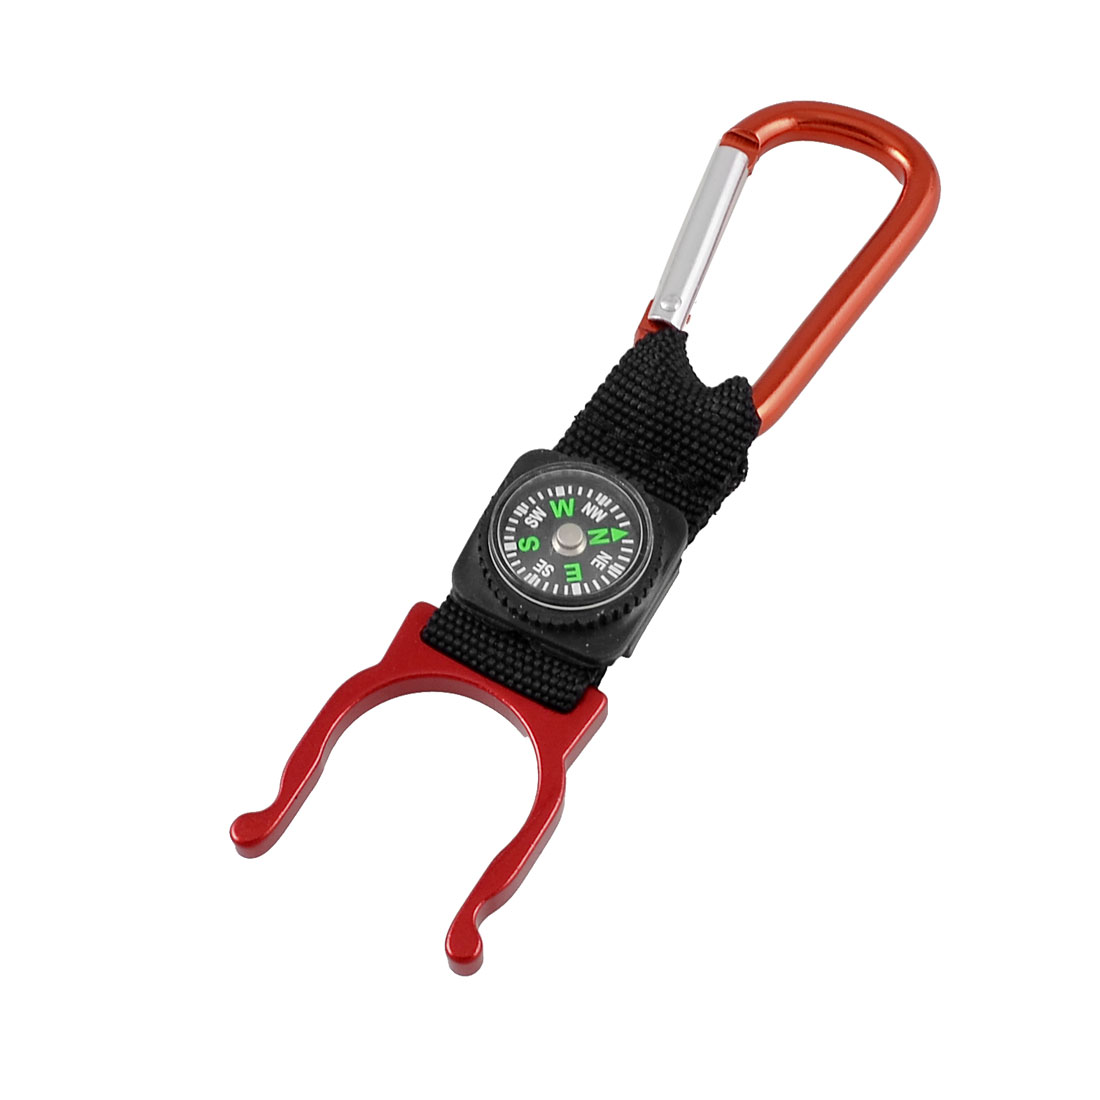 Red Black Strap Water Botte Holder D Shaped Carabiner Hook w Compass